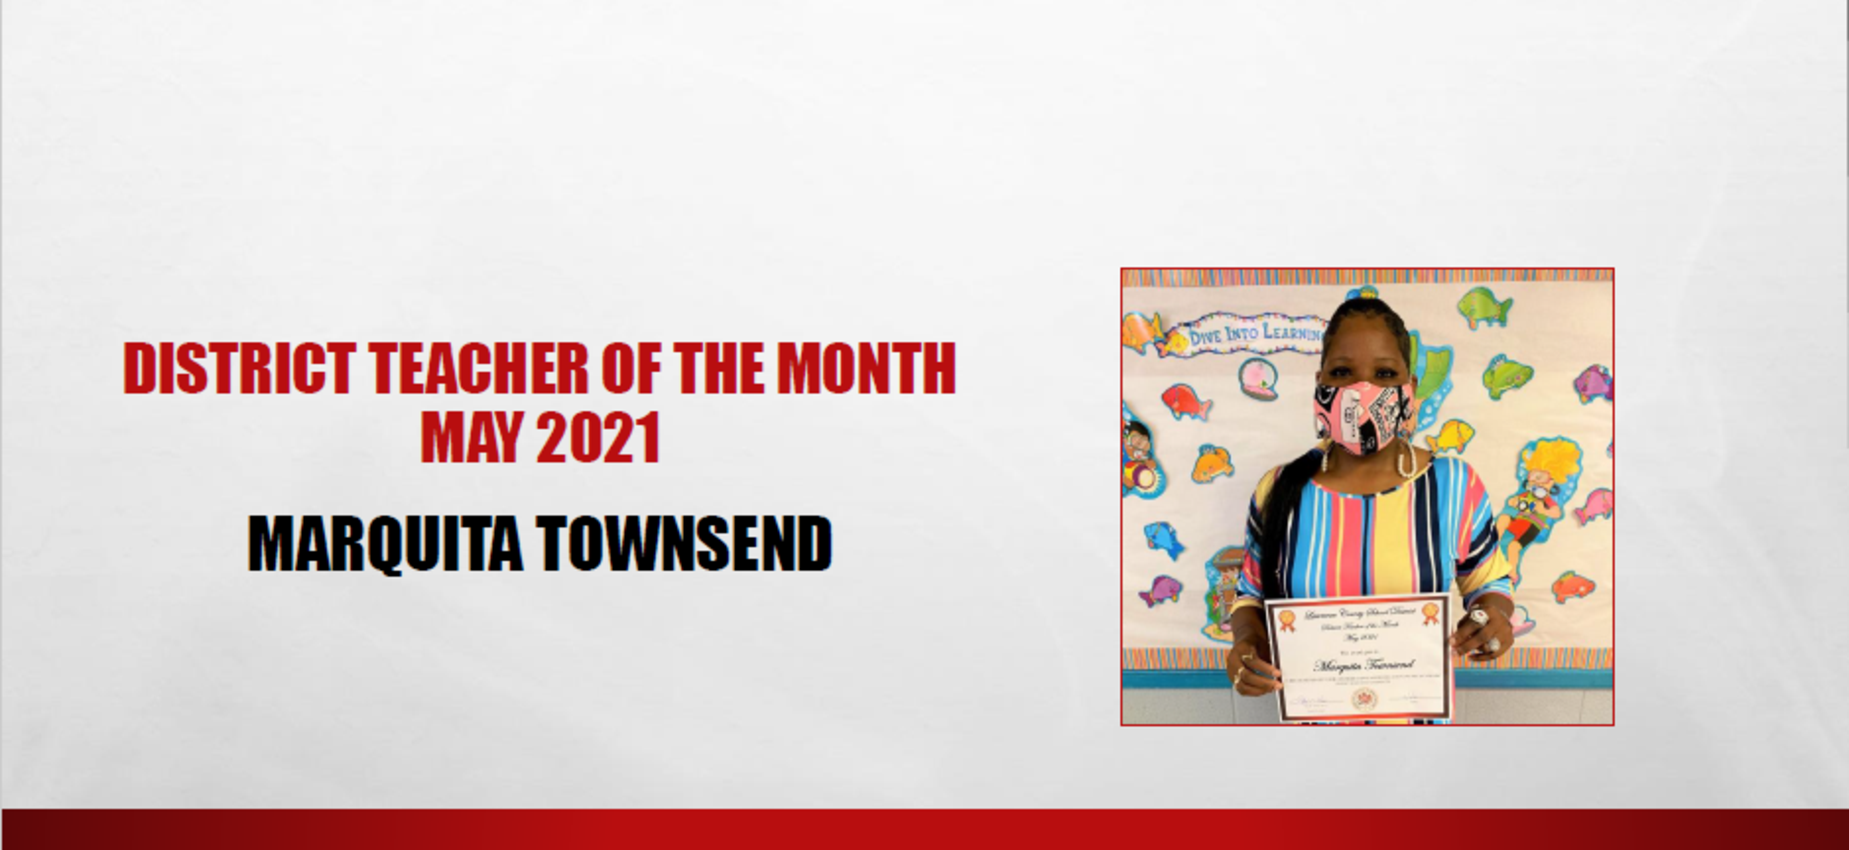 May 2021 District Teacher of the Month Marquita Townsend